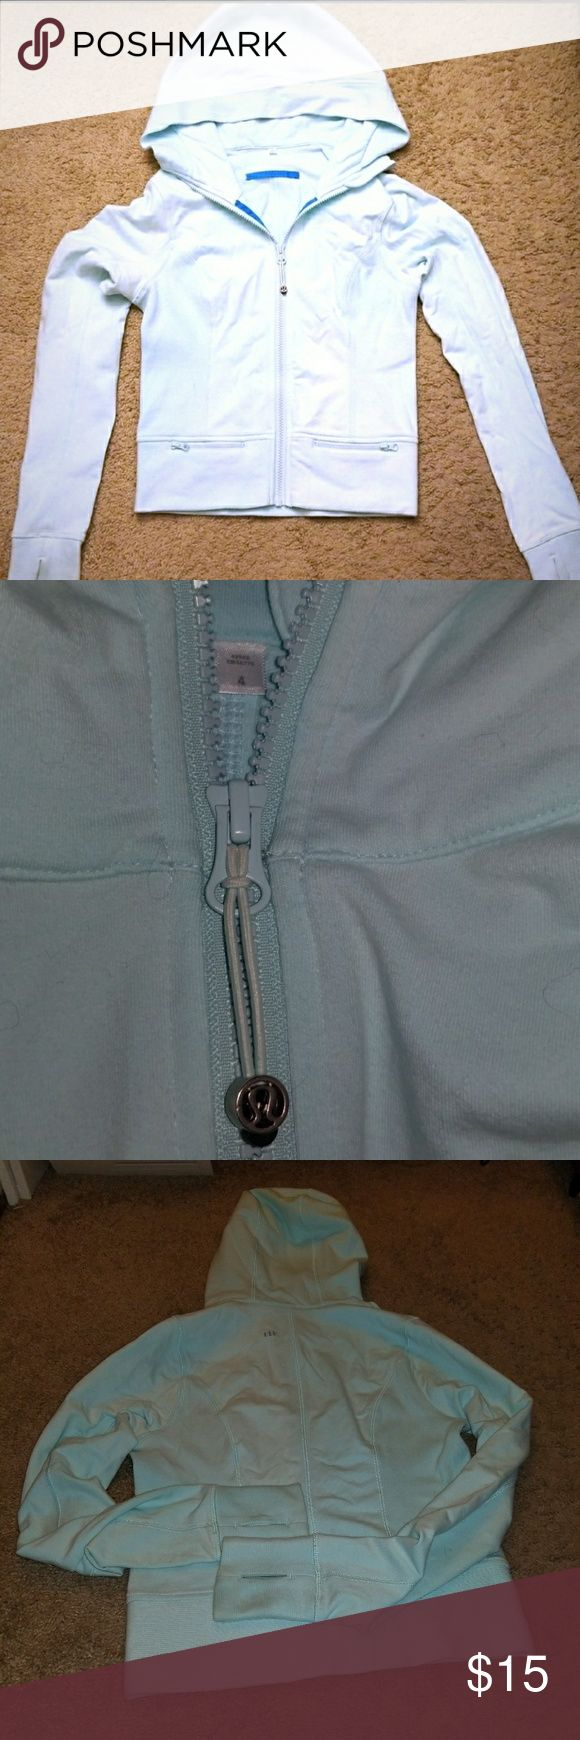 Lululemon Baby Blue Zip Up Hoodie Size 4 XS Gently used lululemon zip up hoodie with thumb holes and 2 zippered front pockets. slight fading from washes and sun, and slight discoloration from usage on wrist as shown in last picture. Still a wonderful and comfy cute hoodie! measure about 20.5 inches from shoulder to bottom, great to layer tank top and leggings! lululemon athletica Tops Sweatshirts & Hoodies